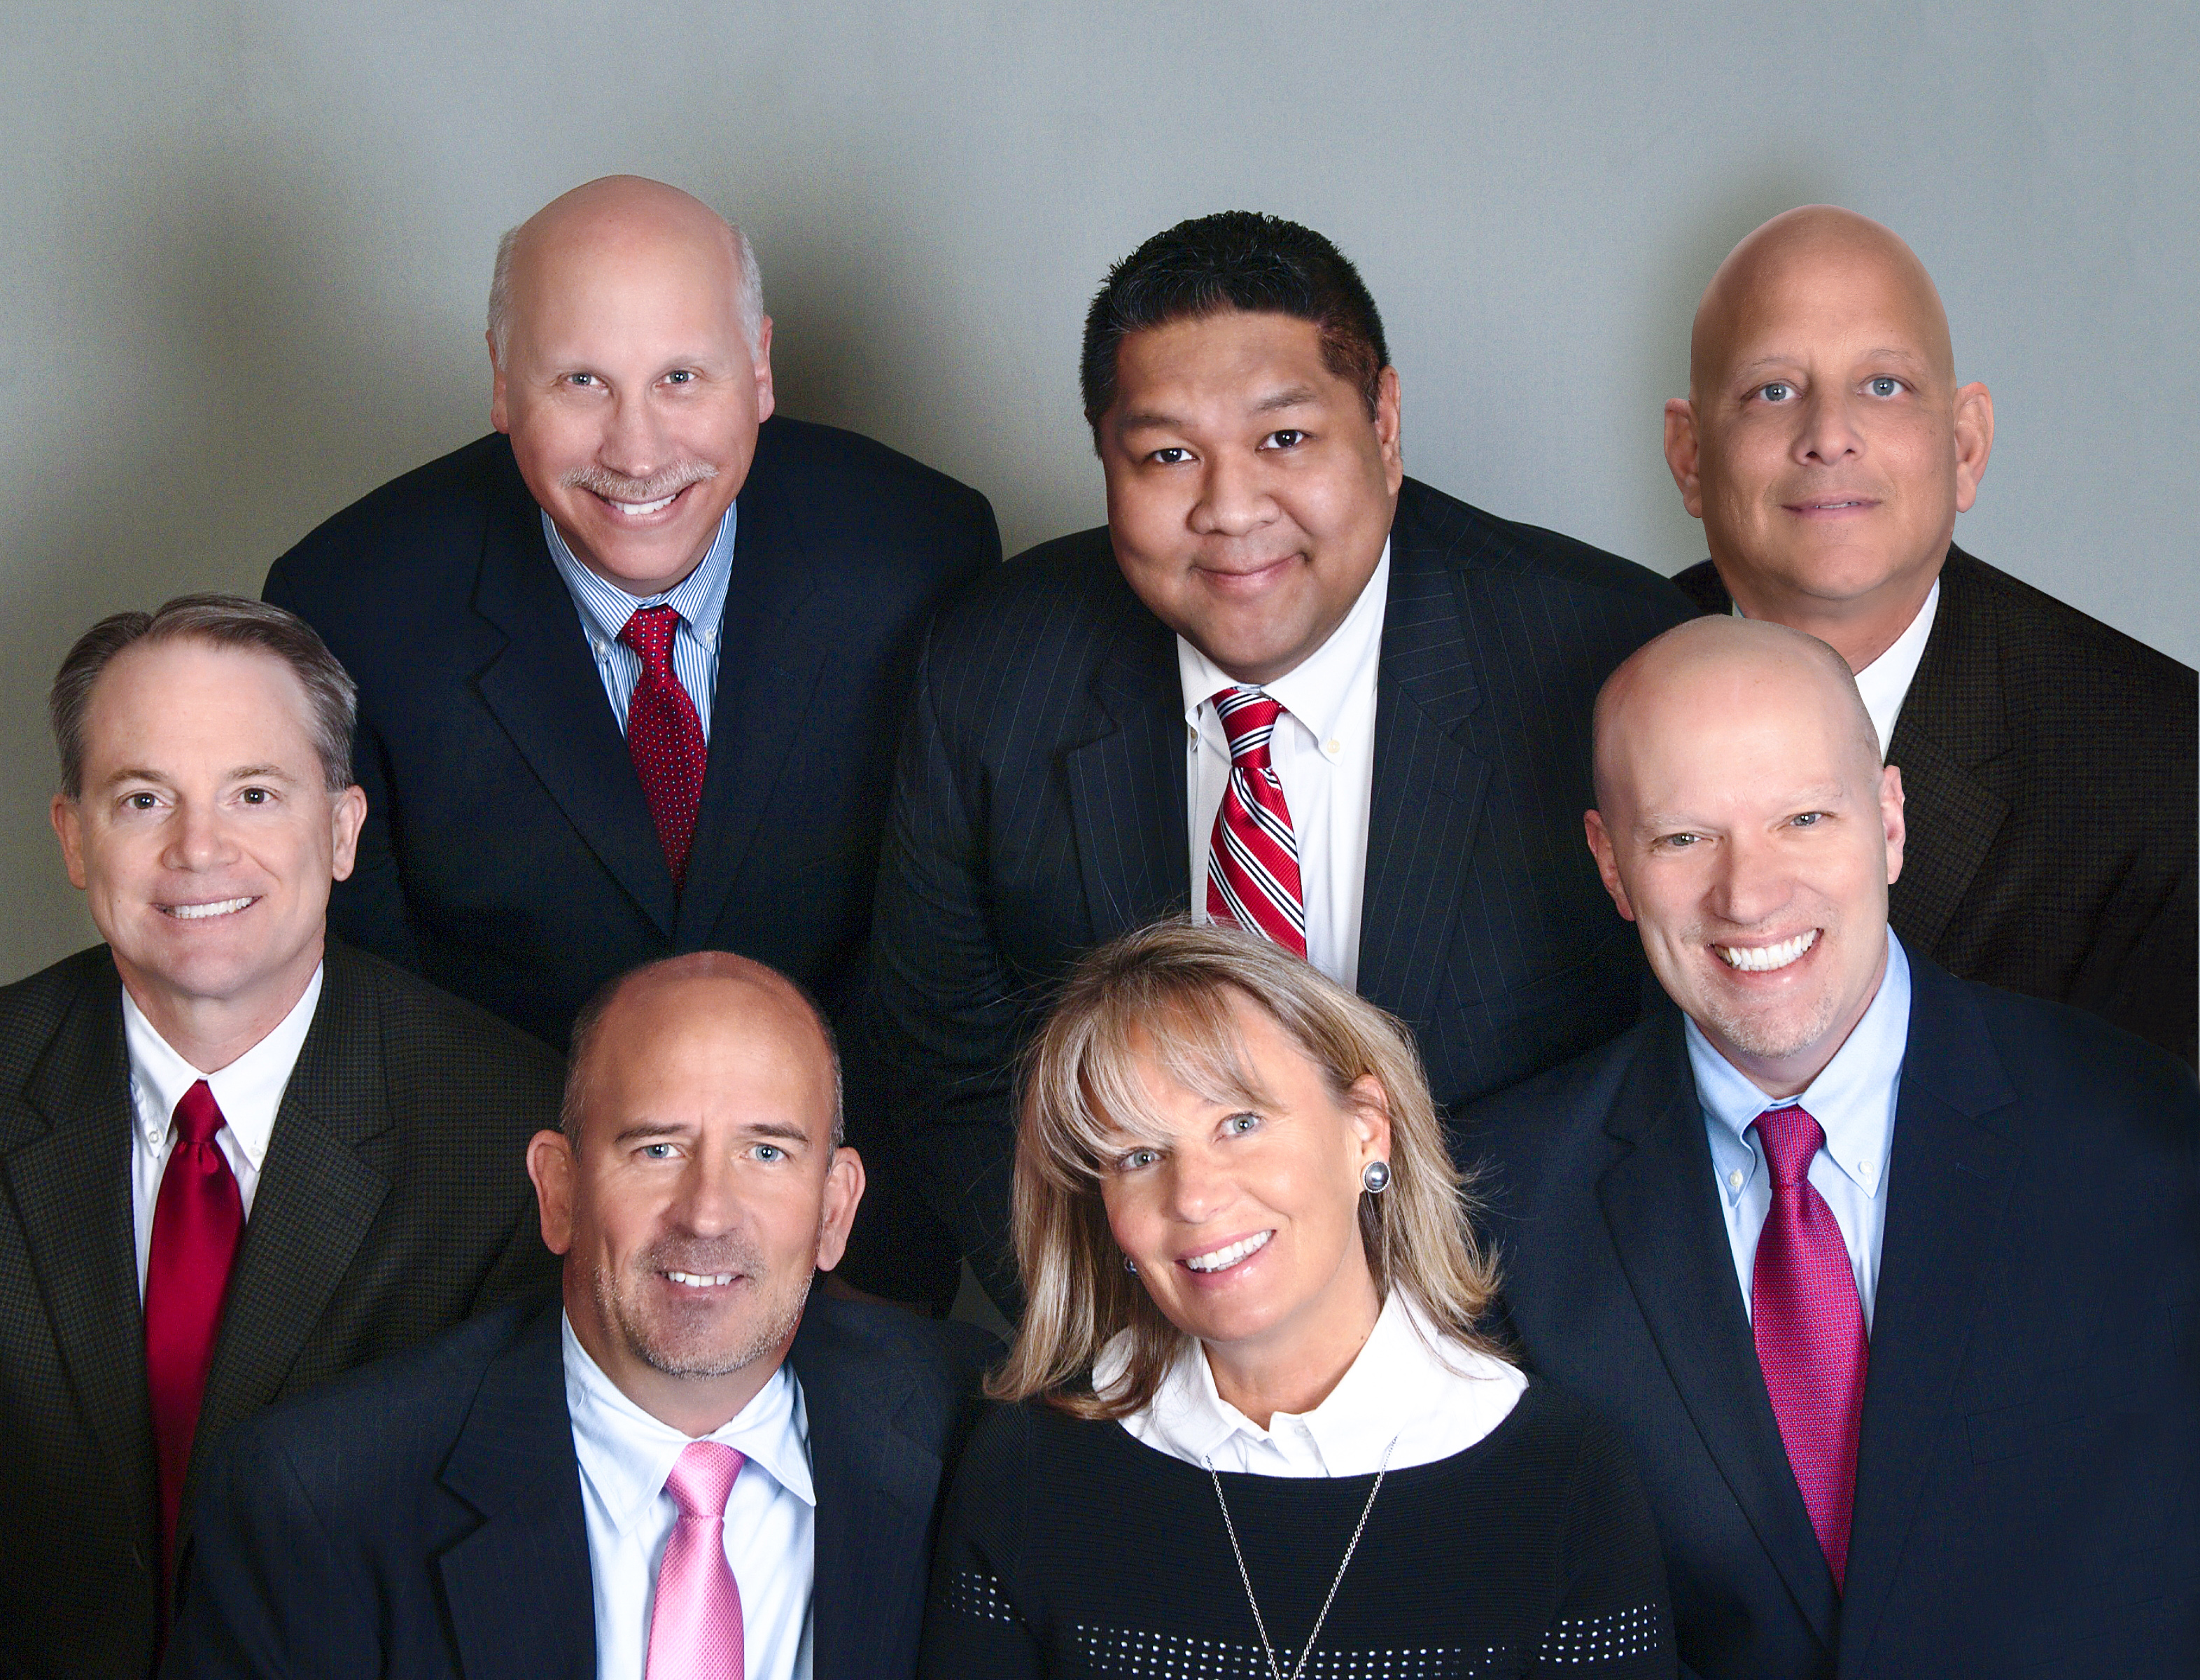 The Sunrise Executive Team.